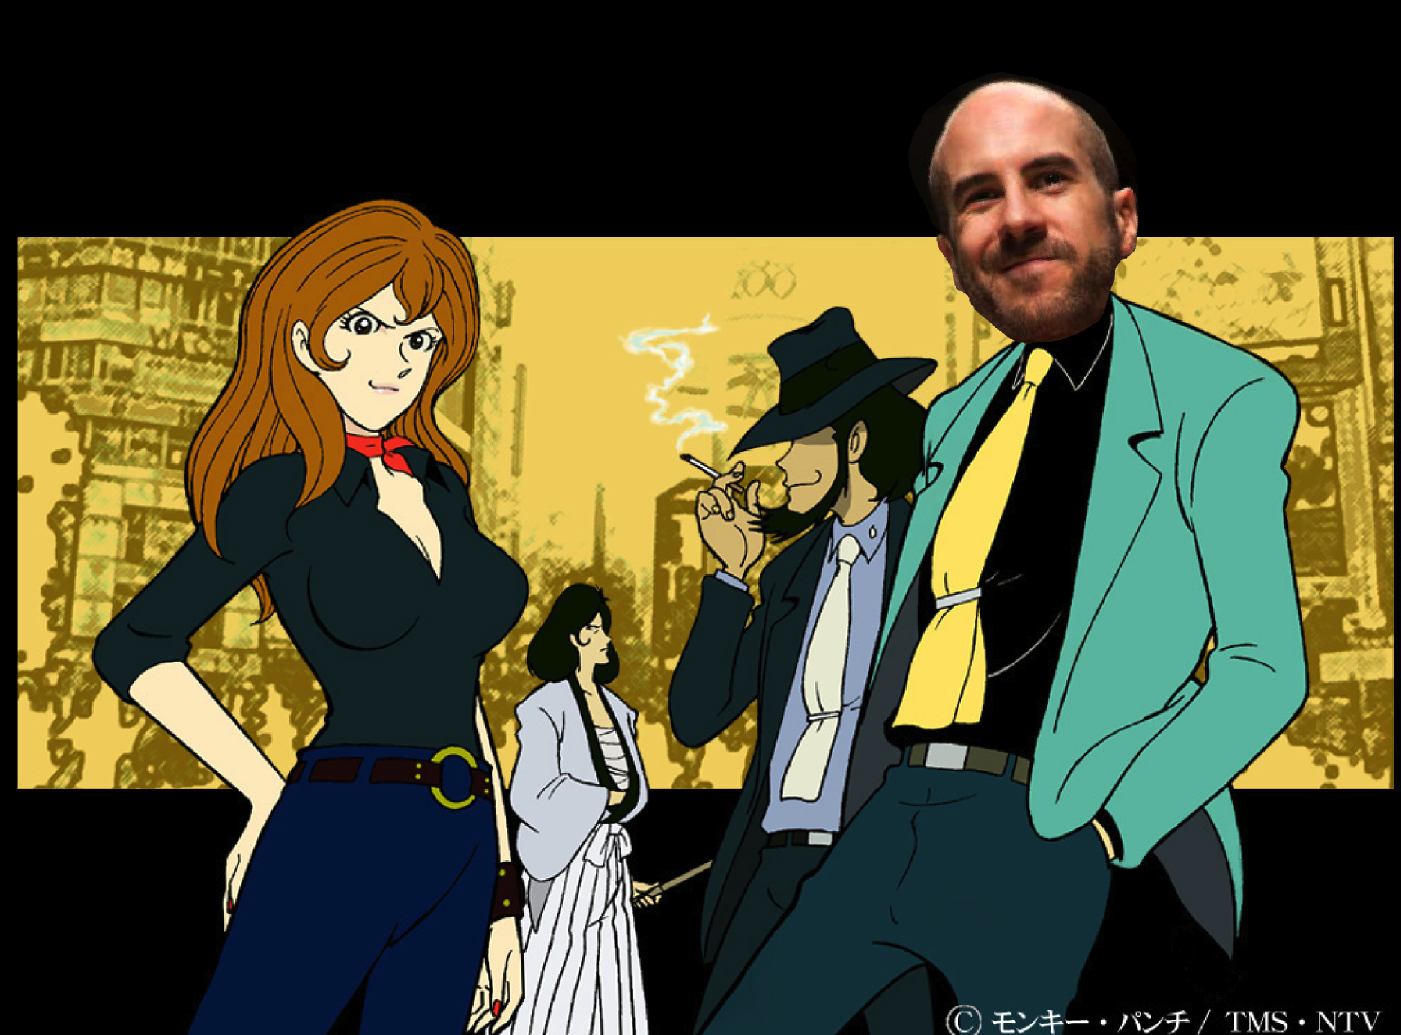 Claire's WWE Art: Cesaro III, Cesaro, WWE, 2014, Lupin 3rd, Monkey Punch